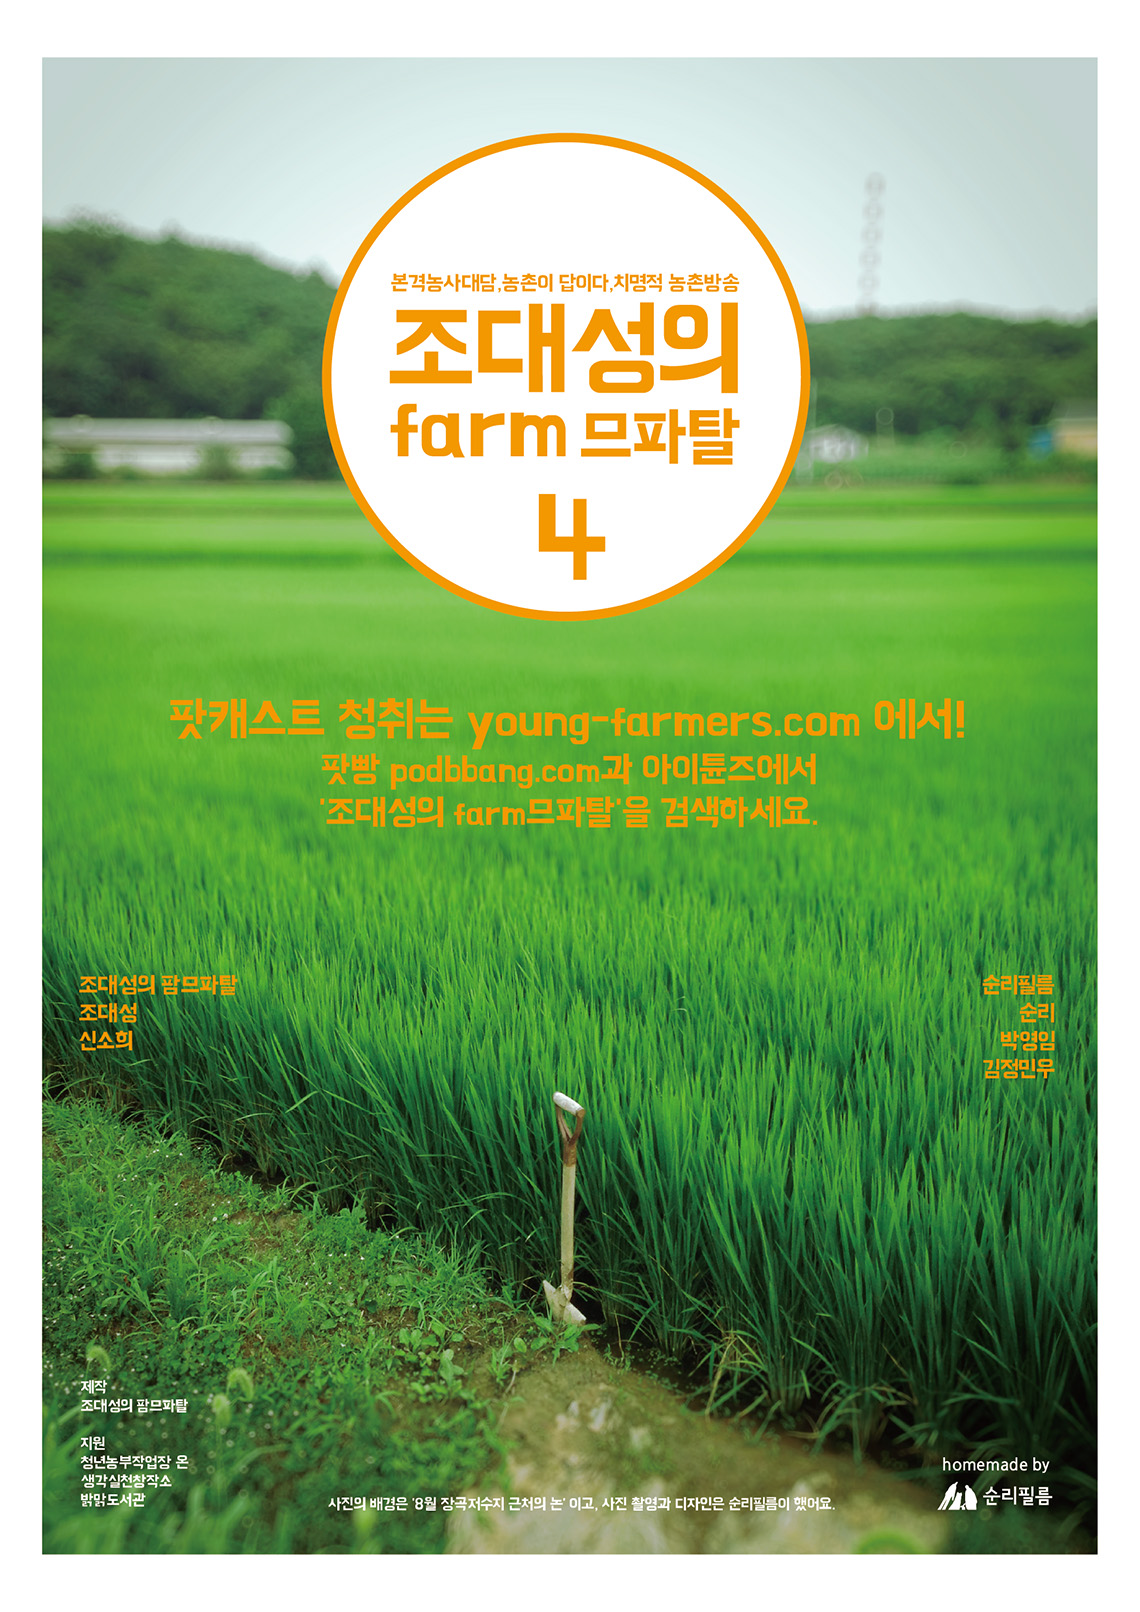 20150809_farmfatal04_podcast_poster